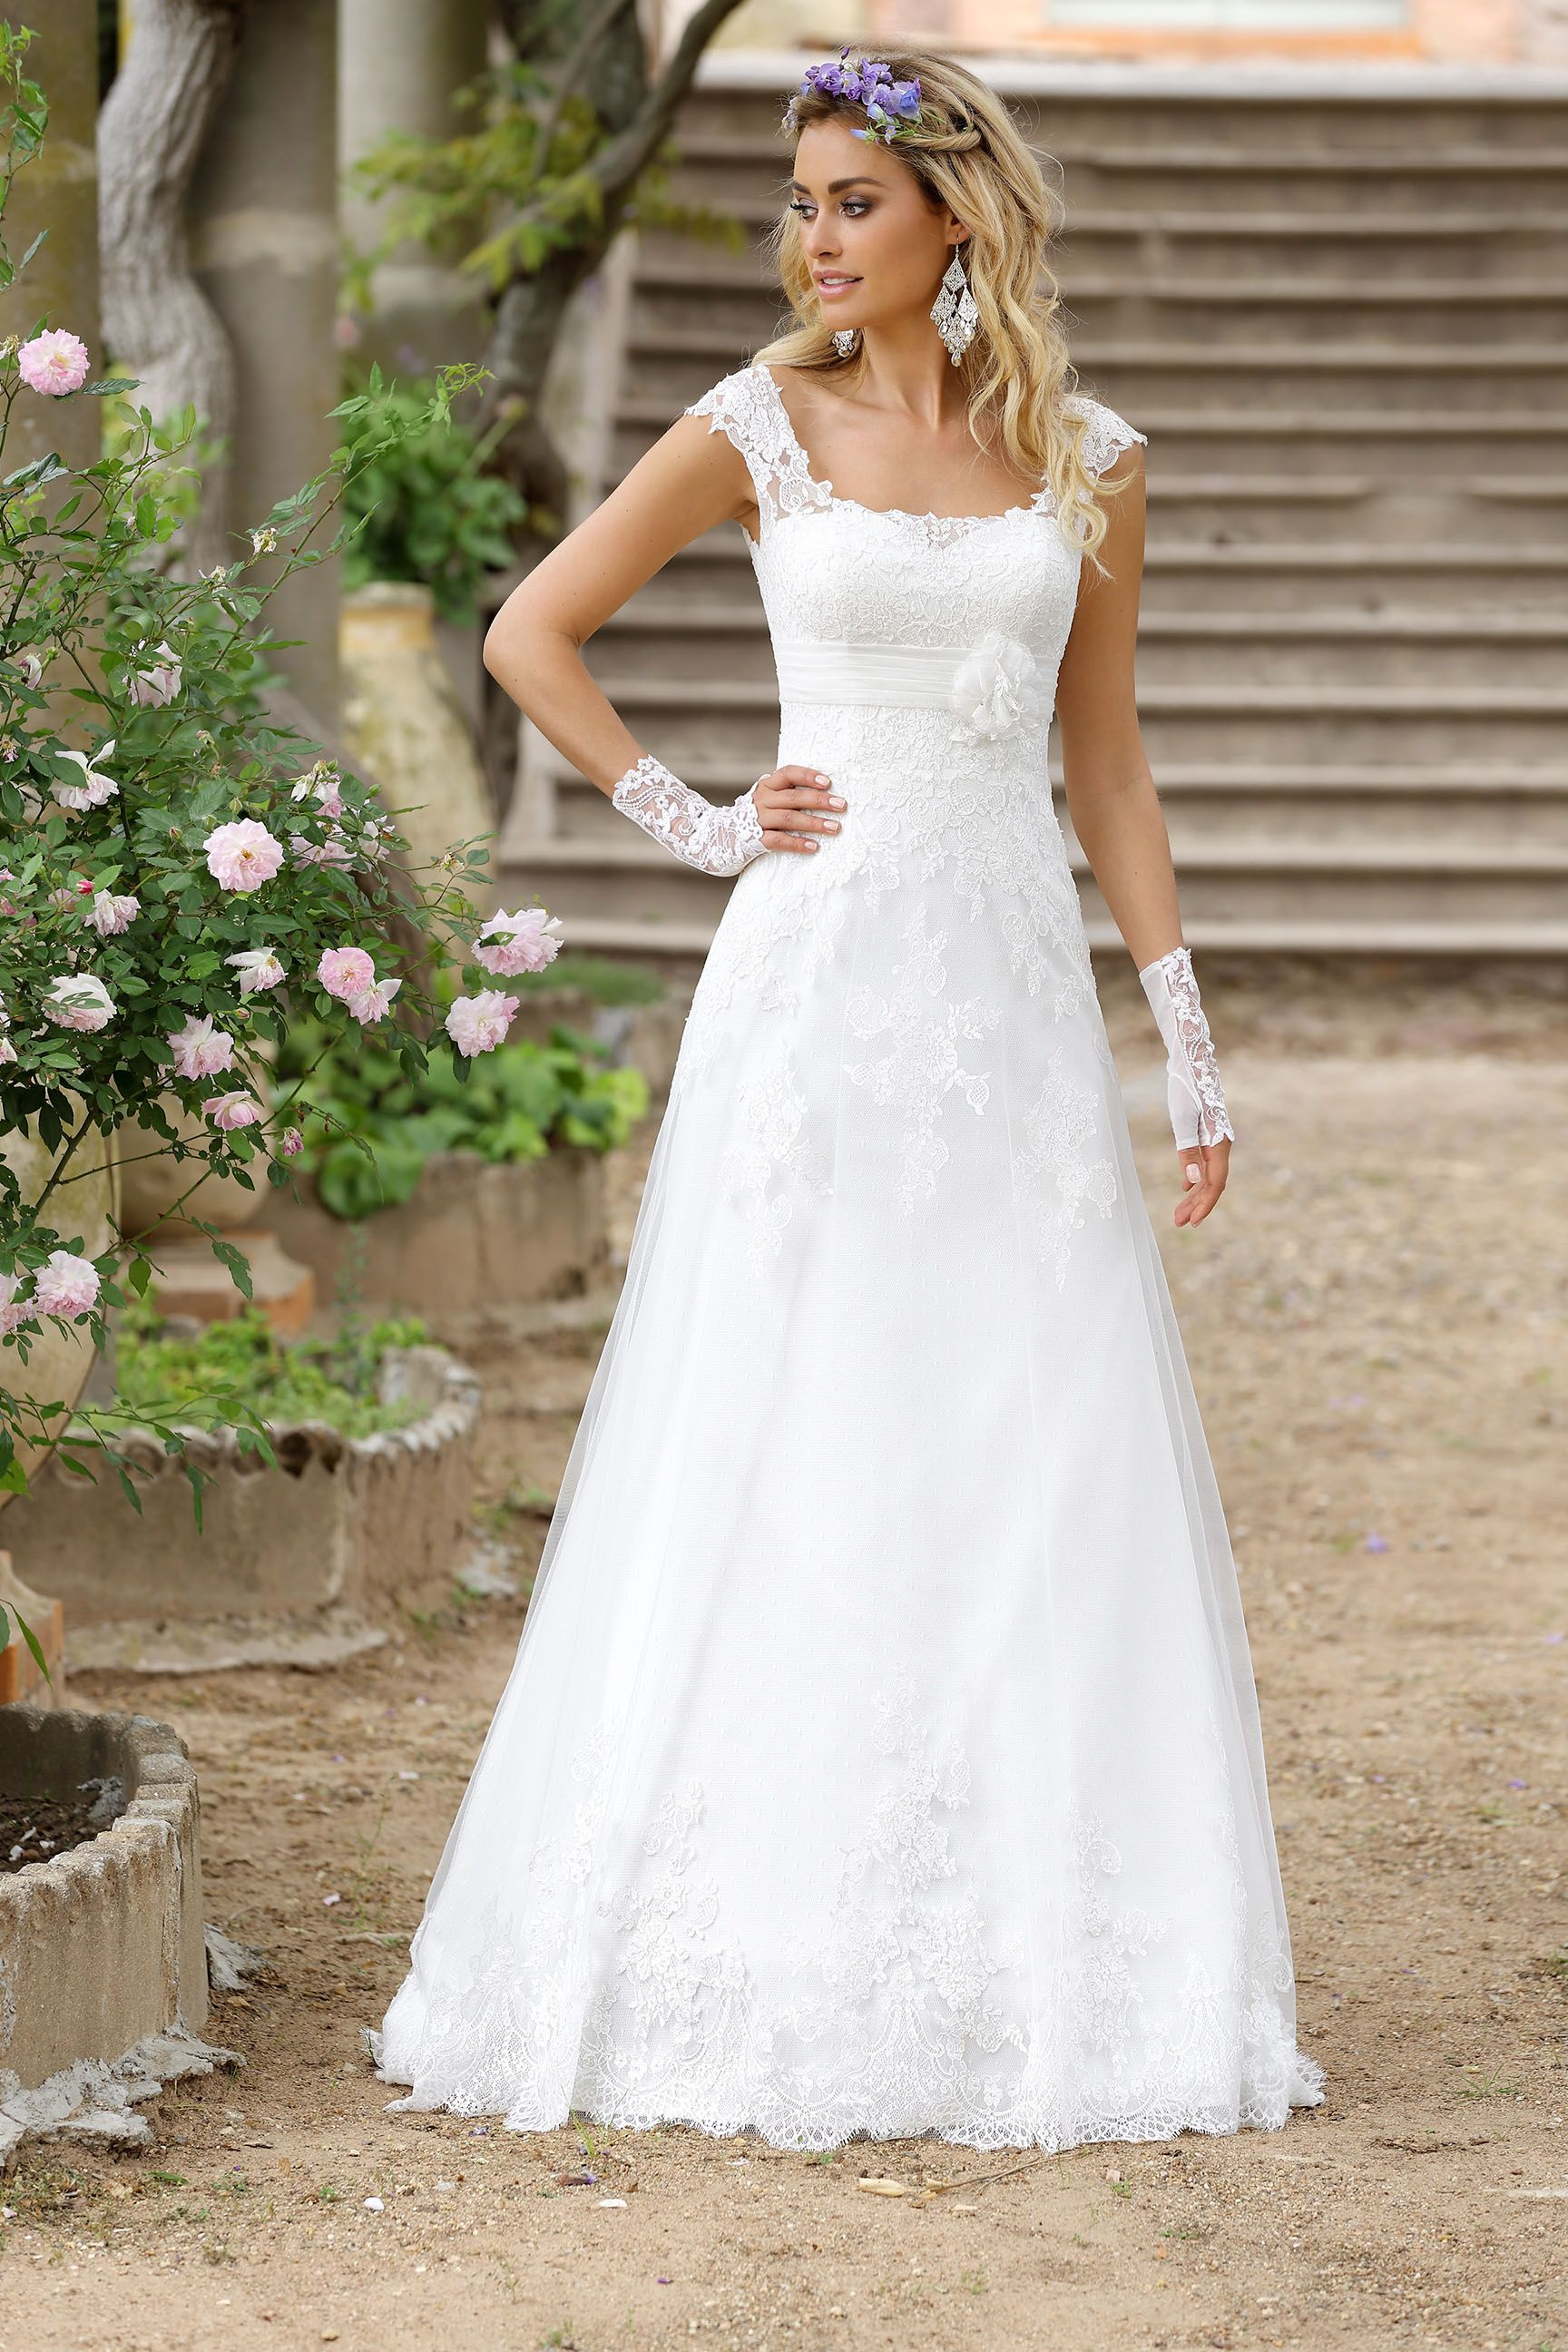 Ladybird Wedding Dress 416001 | Ladybird Collection 2016 | Pinterest ...